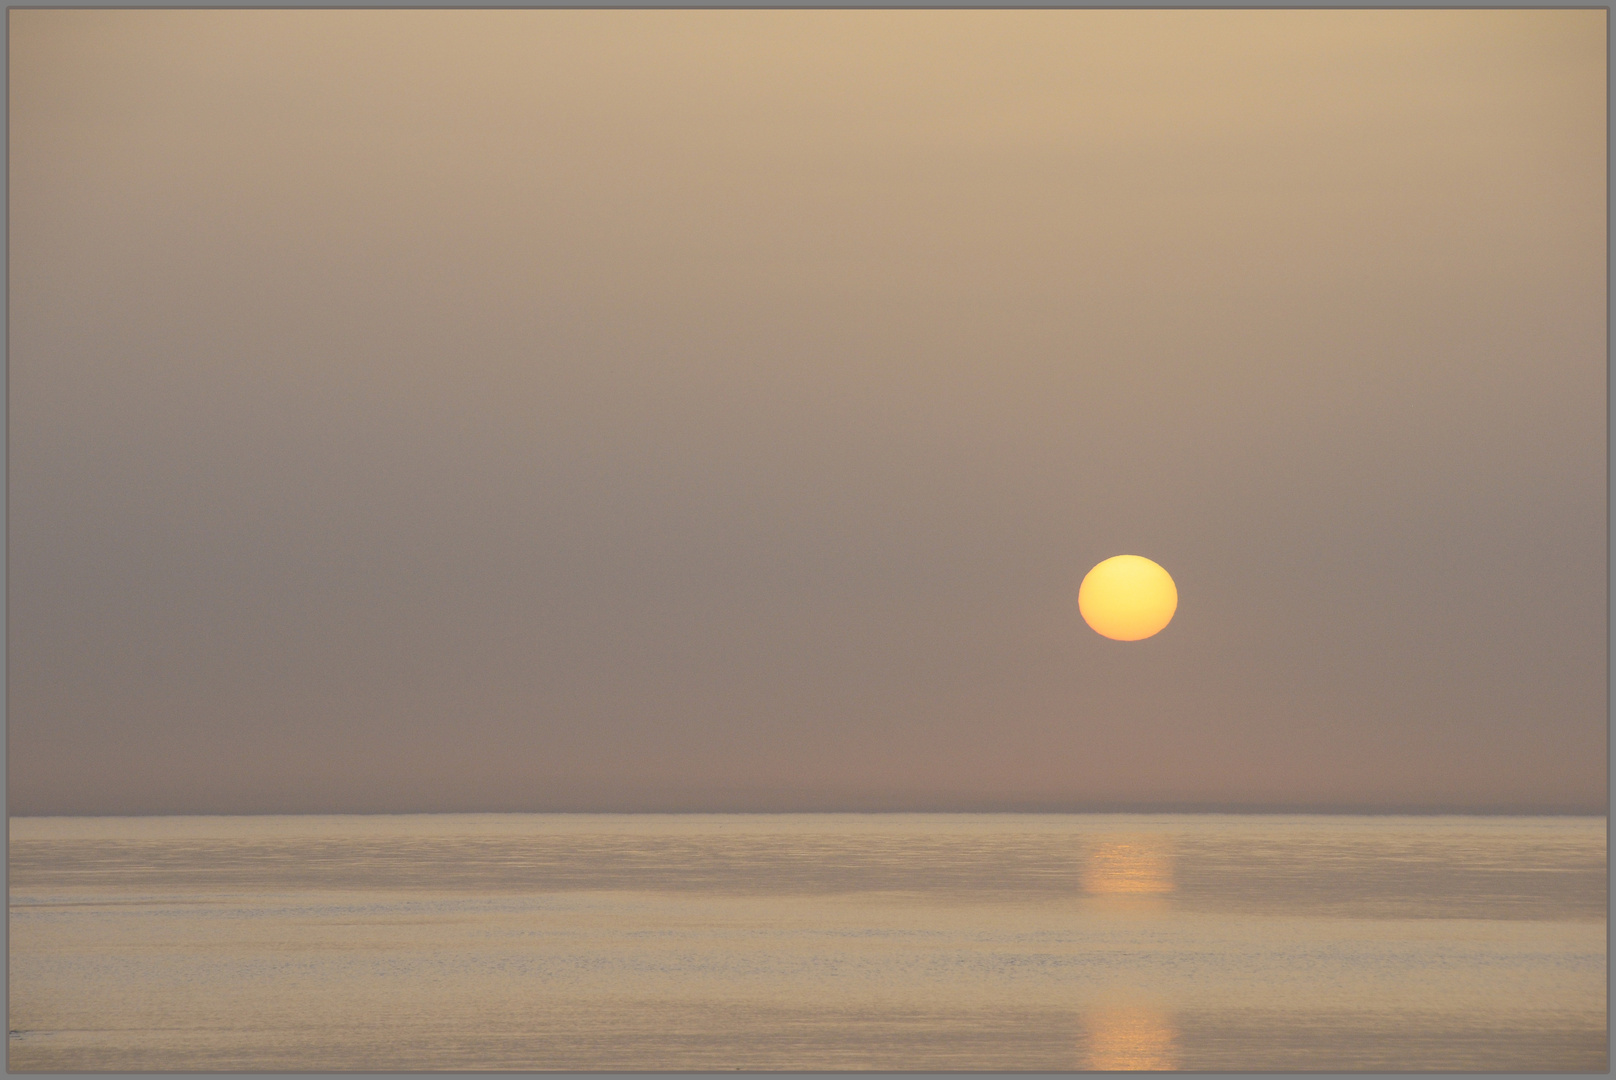 Egypt / Red Sea / 05:33